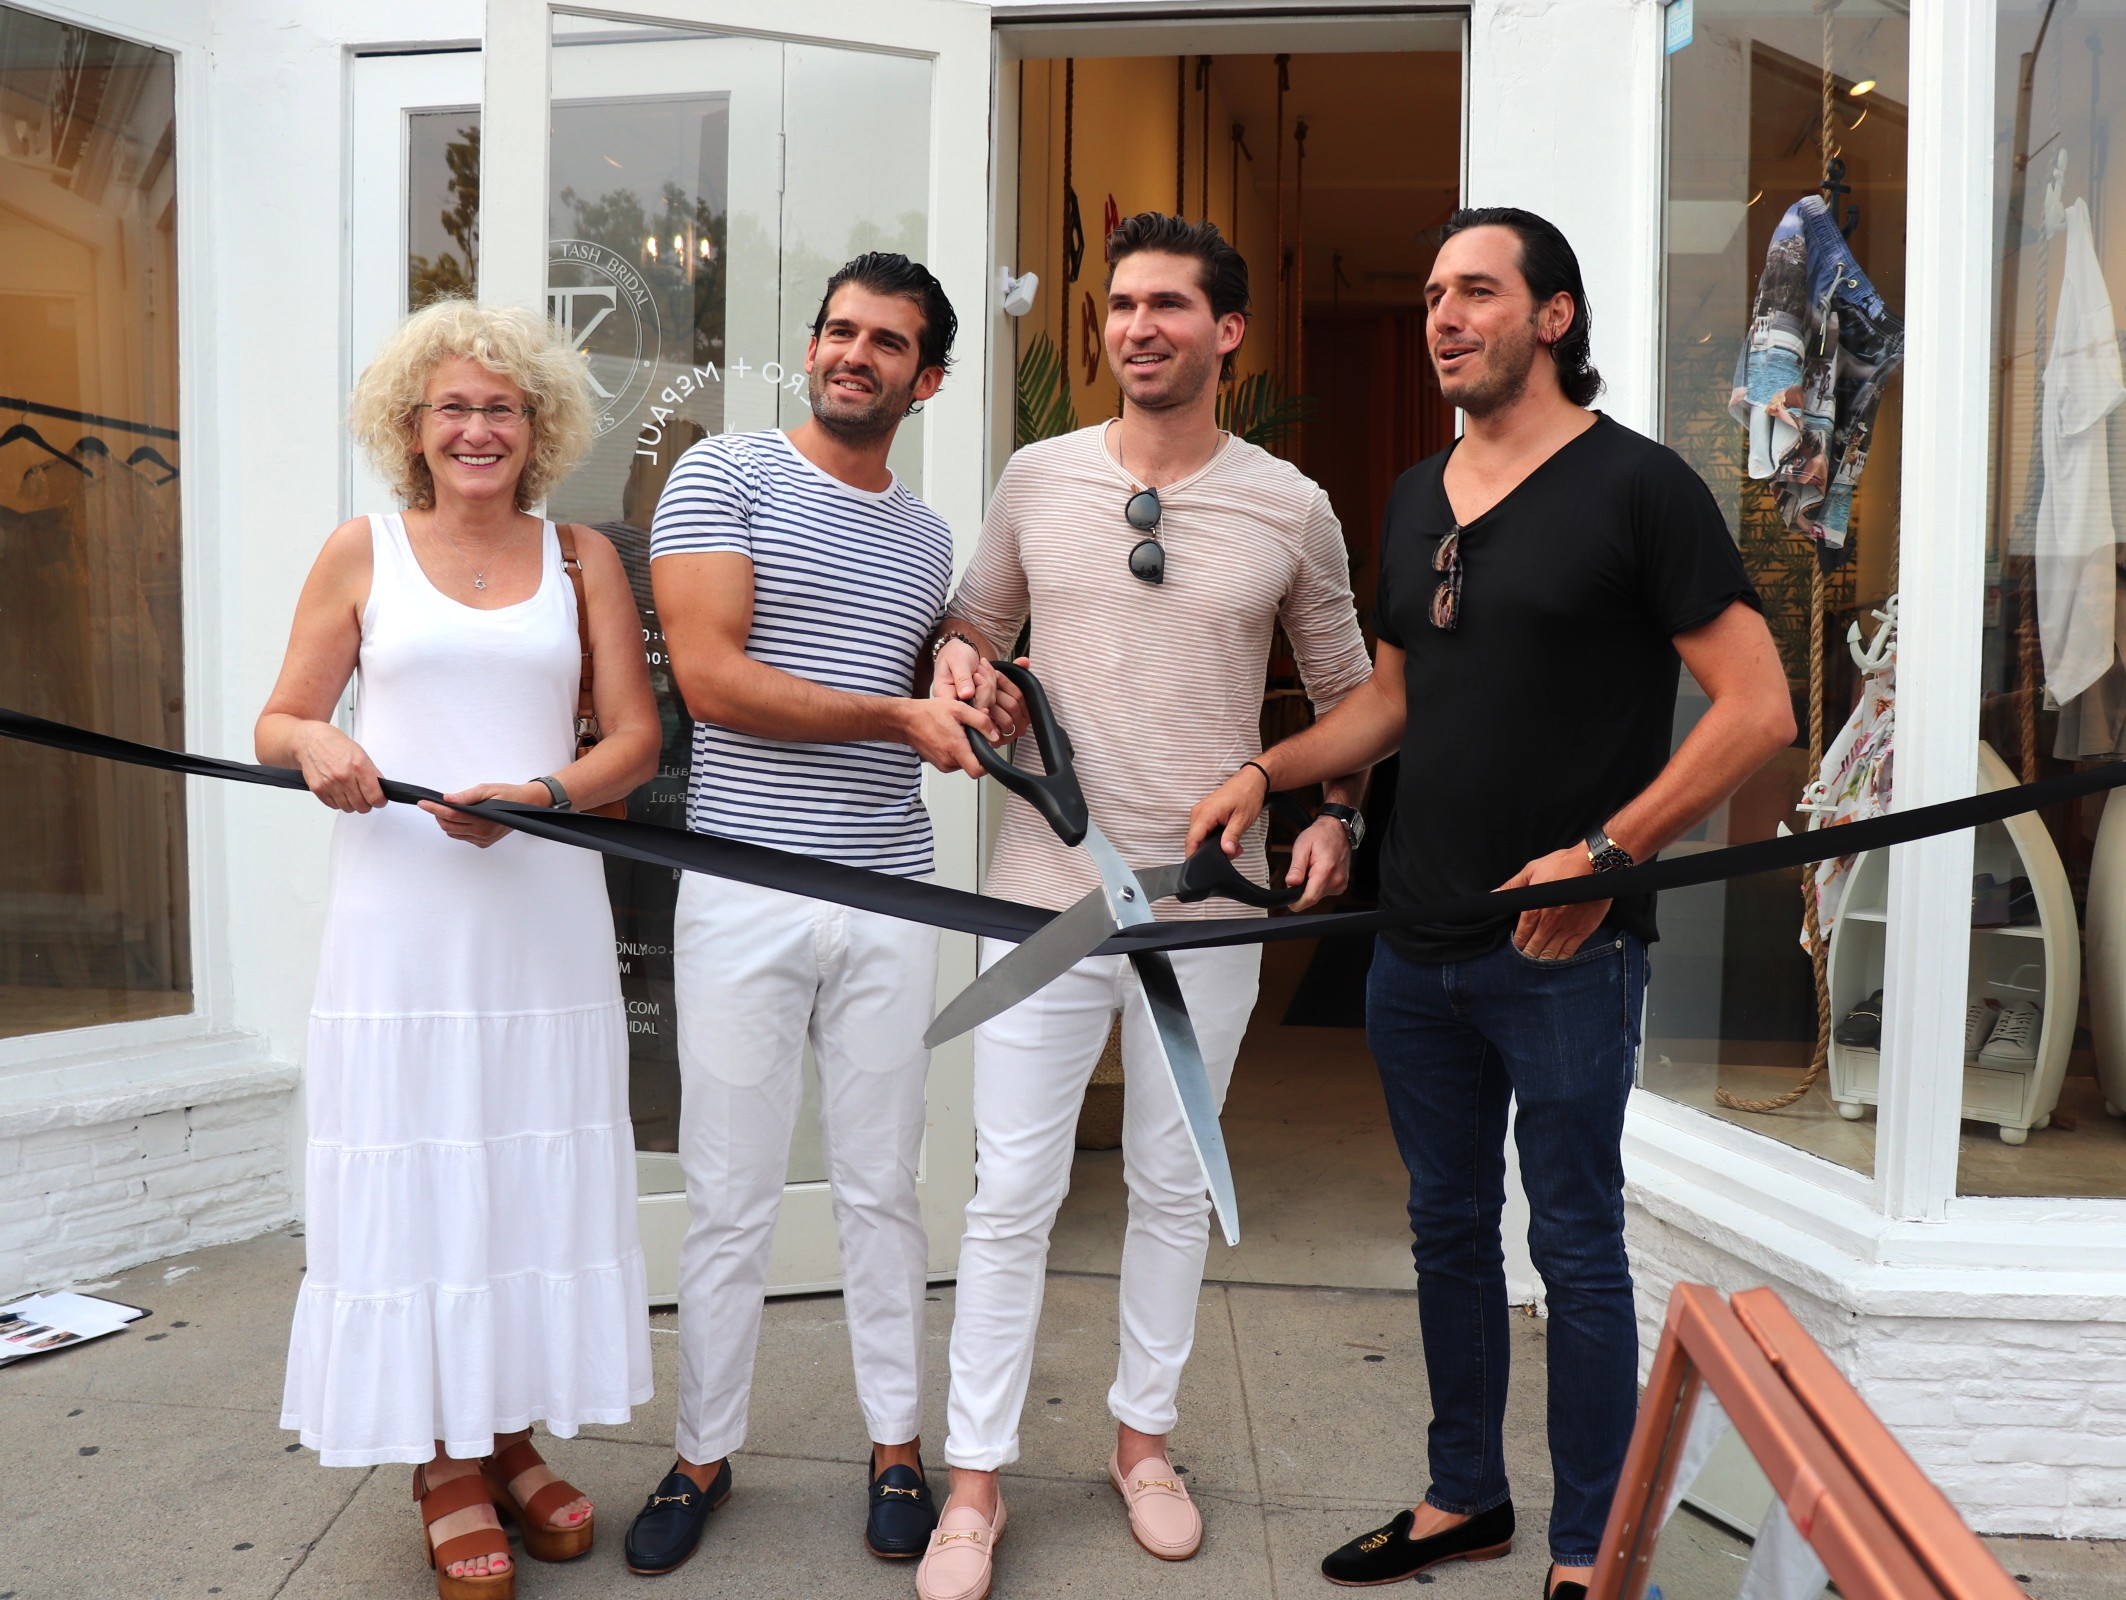 West Hollywood Councilmember Lauren Meister, Co-founder Rual Gonzalez, Co-founder Hernan Junco, and business partner Patricio Jourdain at the ribbon-cutting ceremony of Romero+McPaul